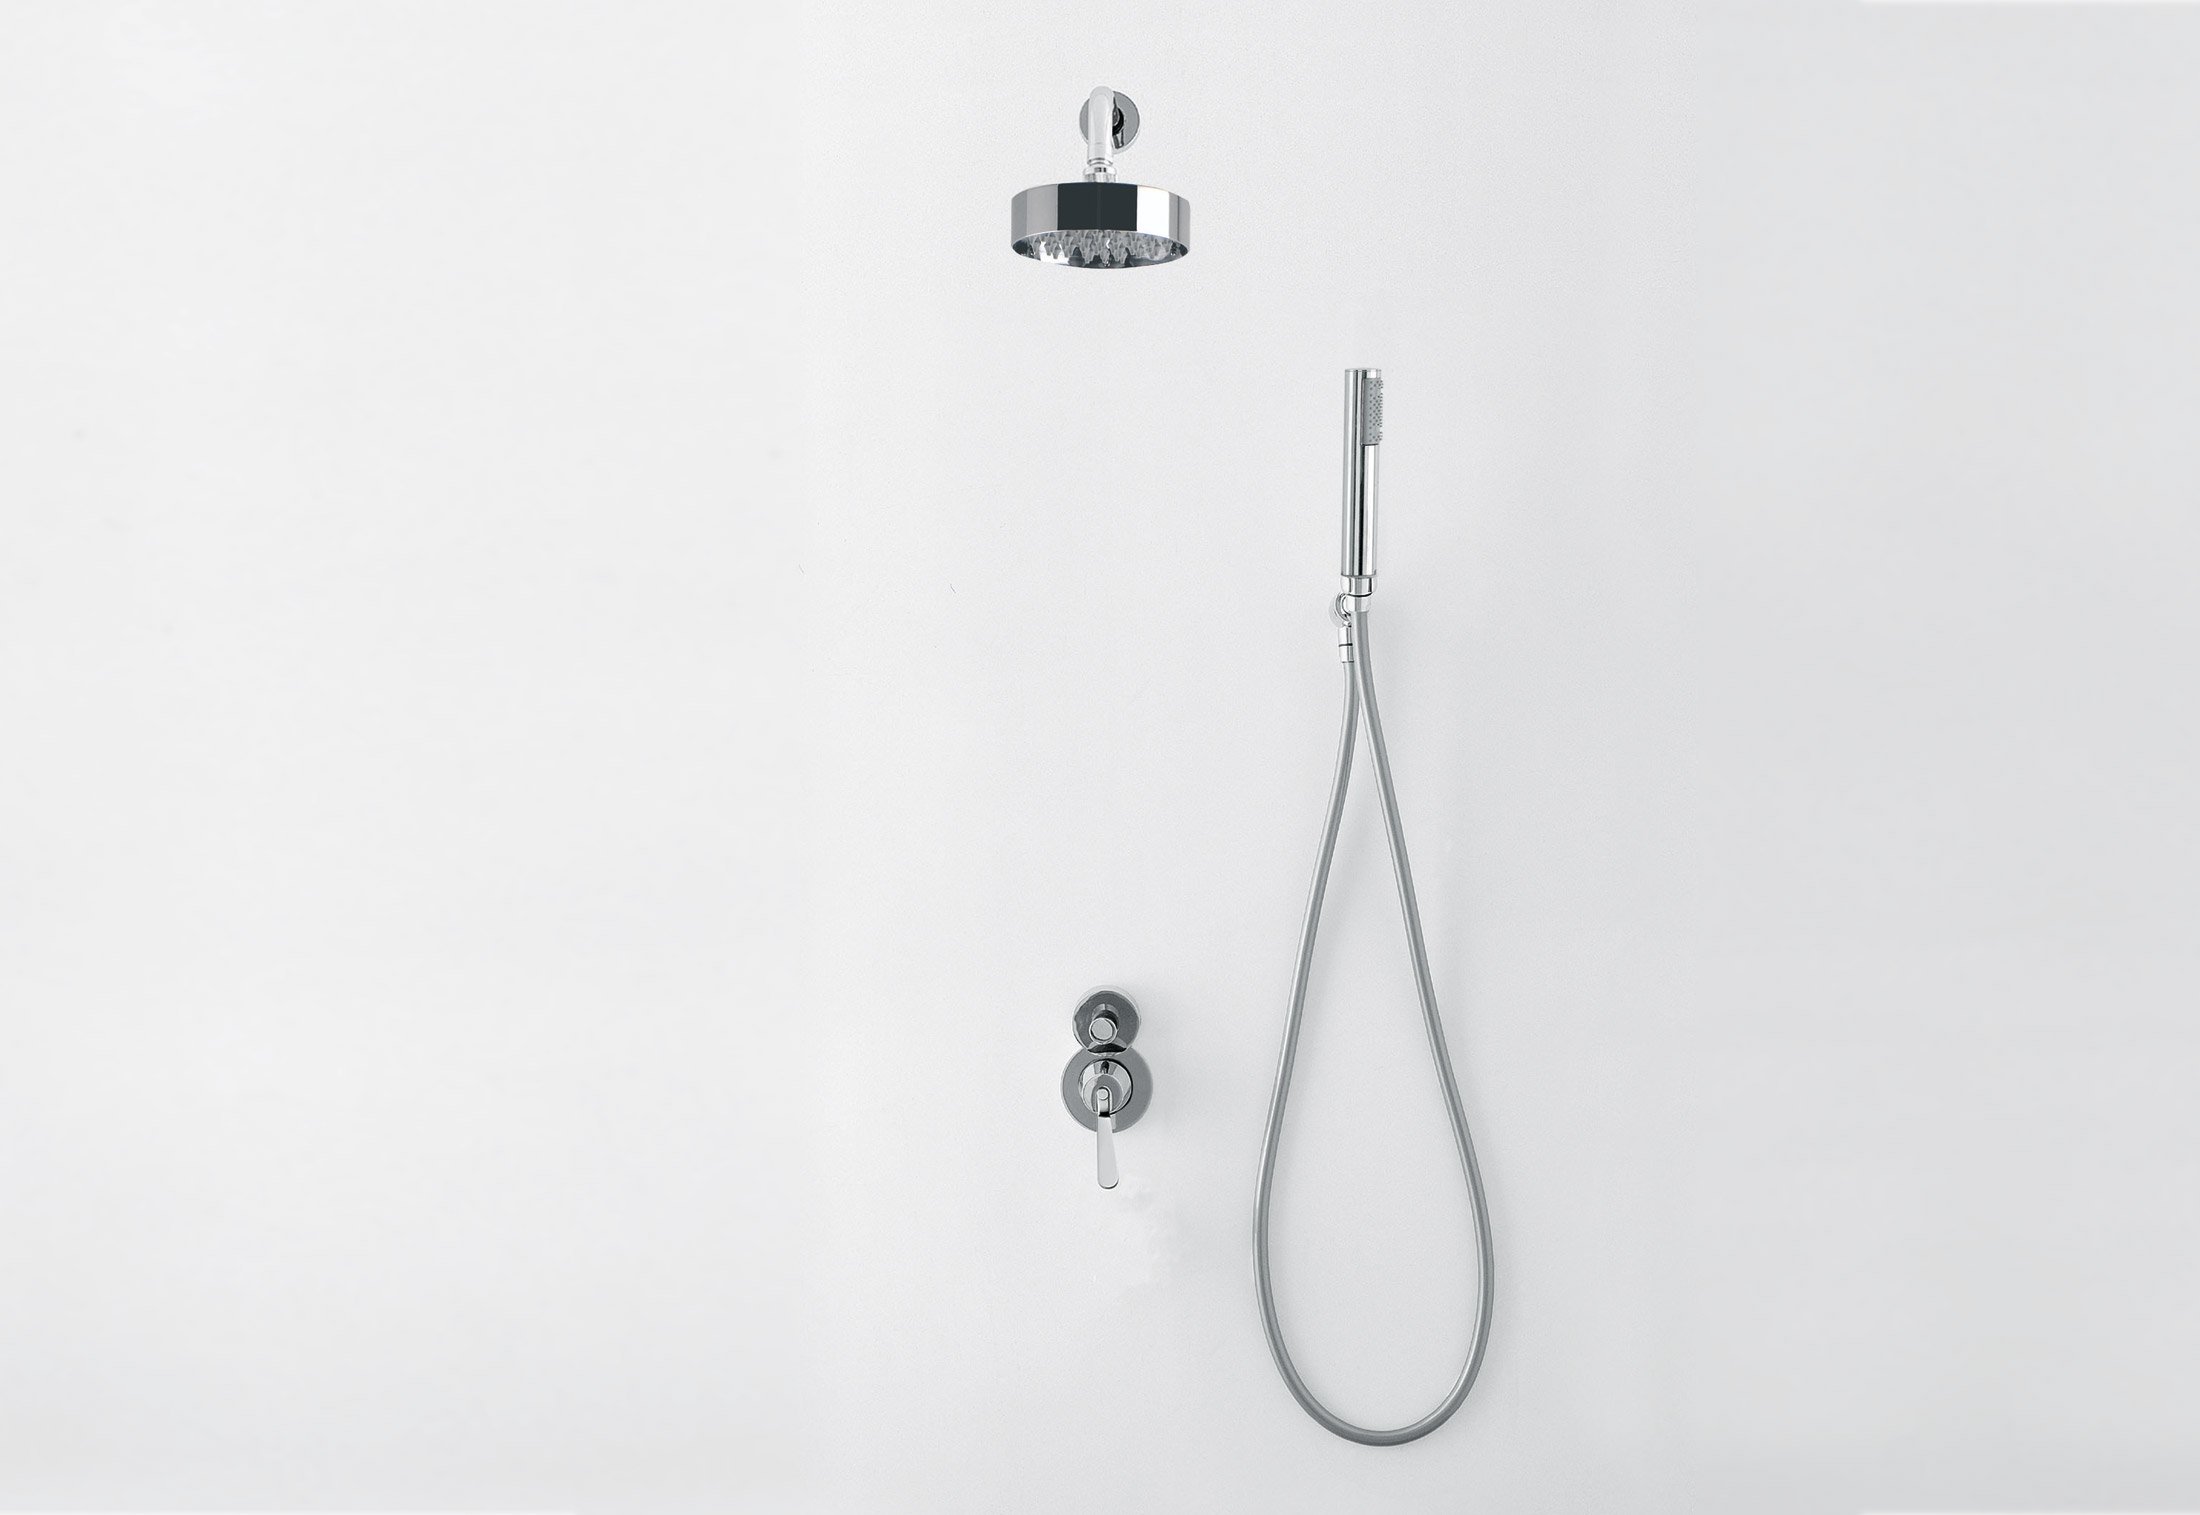 Fez wall shower head by agape | STYLEPARK